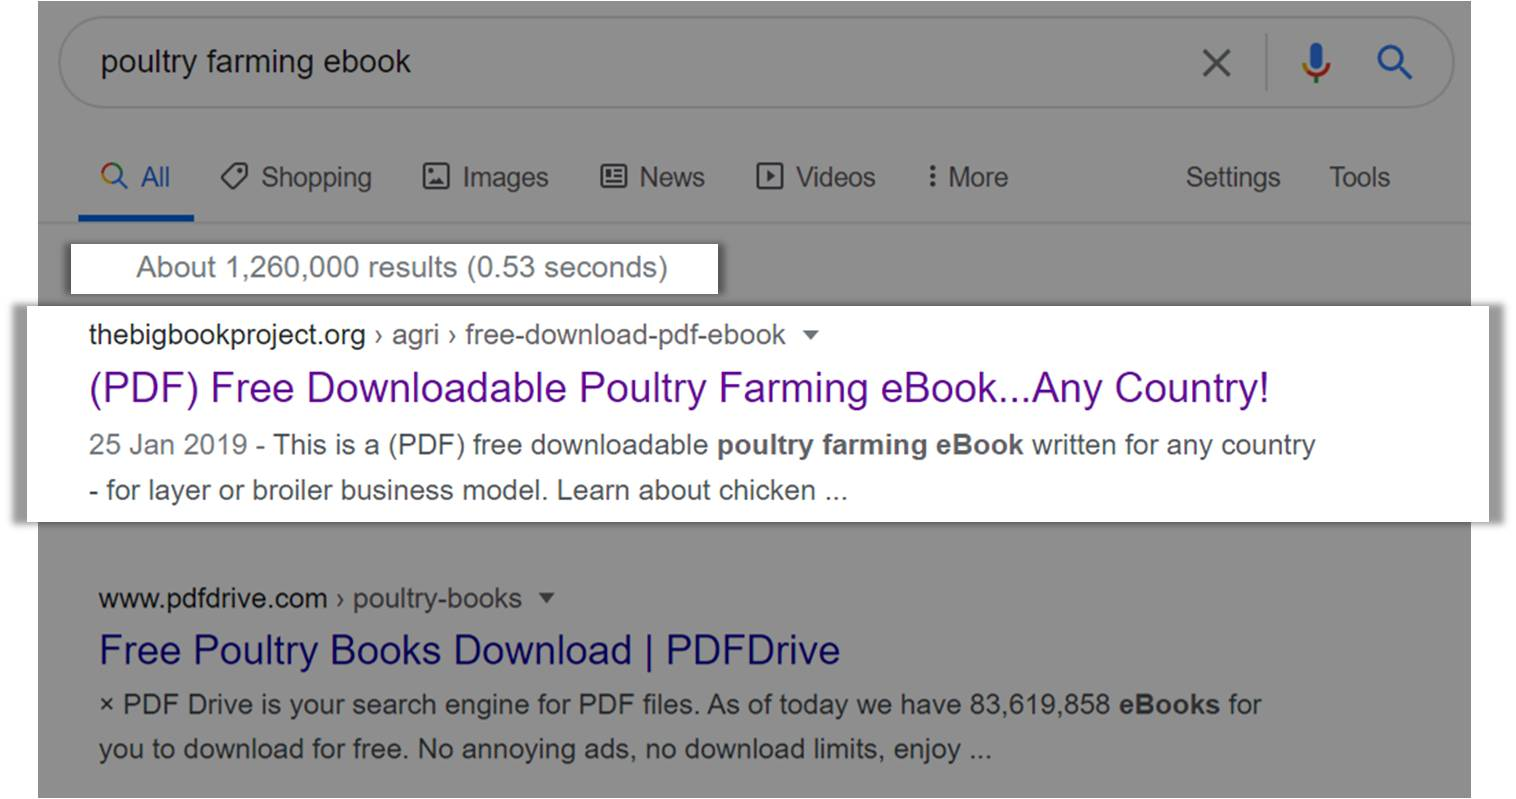 SERP - Poultry Farming eBook